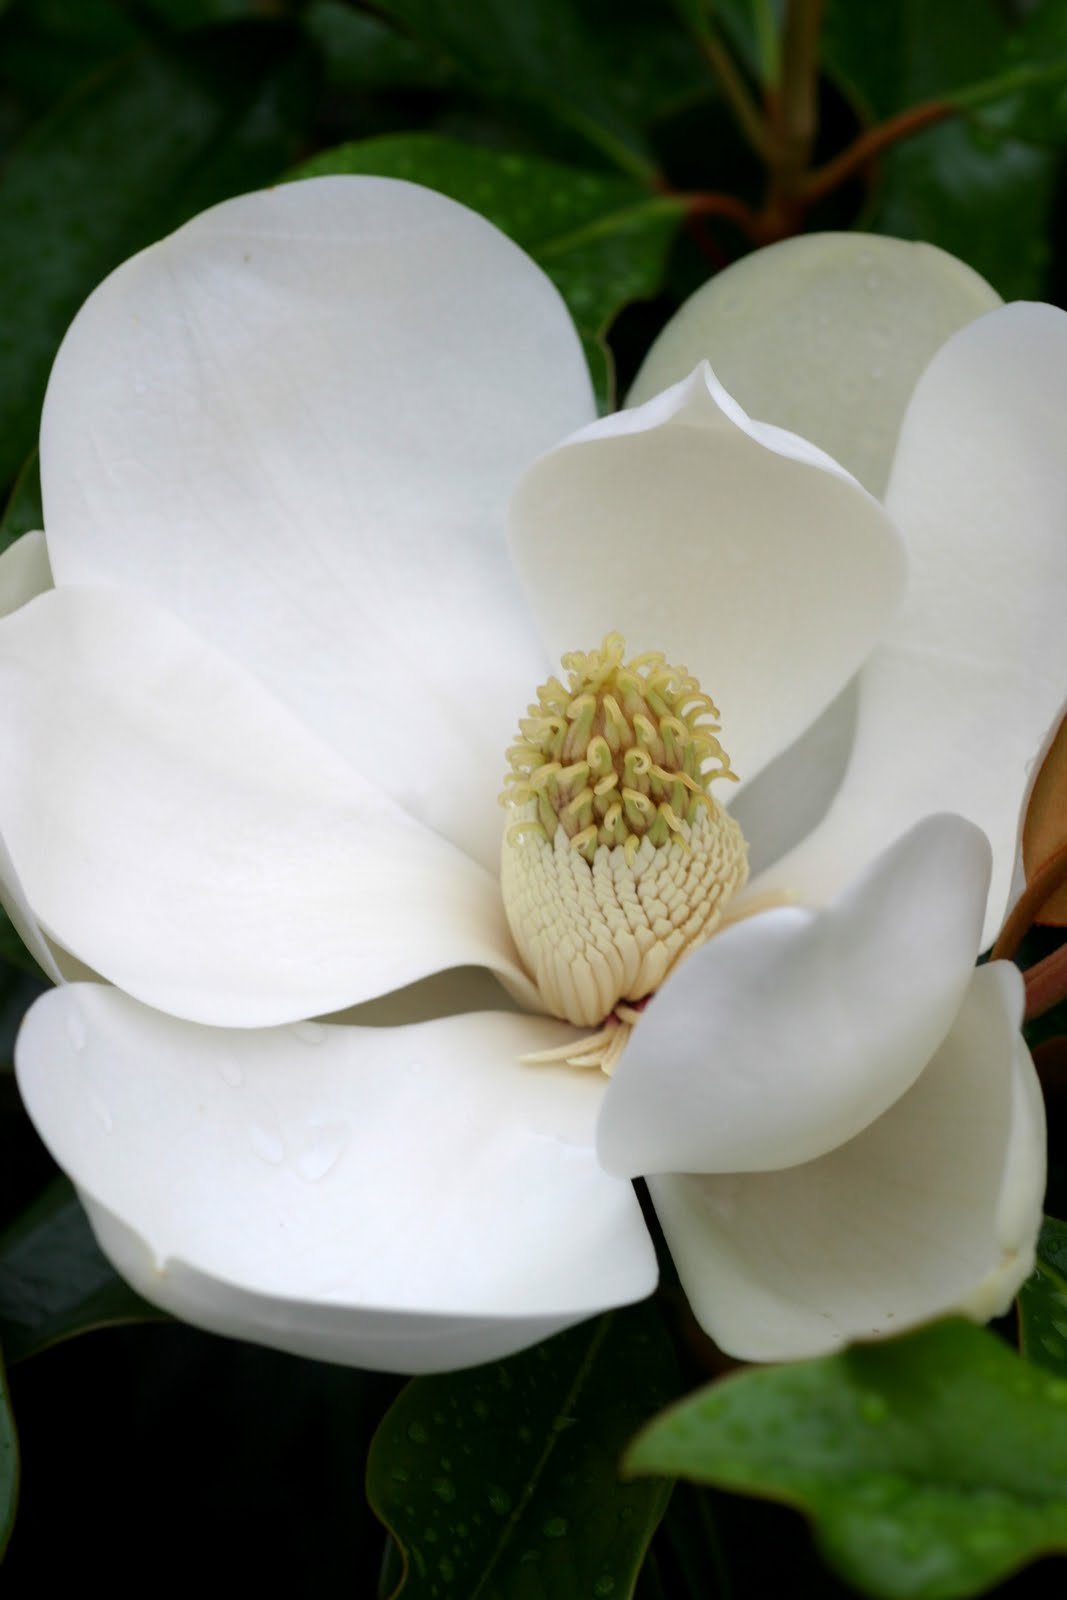 Powell gardens blog midsummers bloom from lotus to trees shrubs a closeup of a southern magnolia flower reveals its relation to the lotus it has a marvelous lemony perfume we have picked one for the front desk for all izmirmasajfo